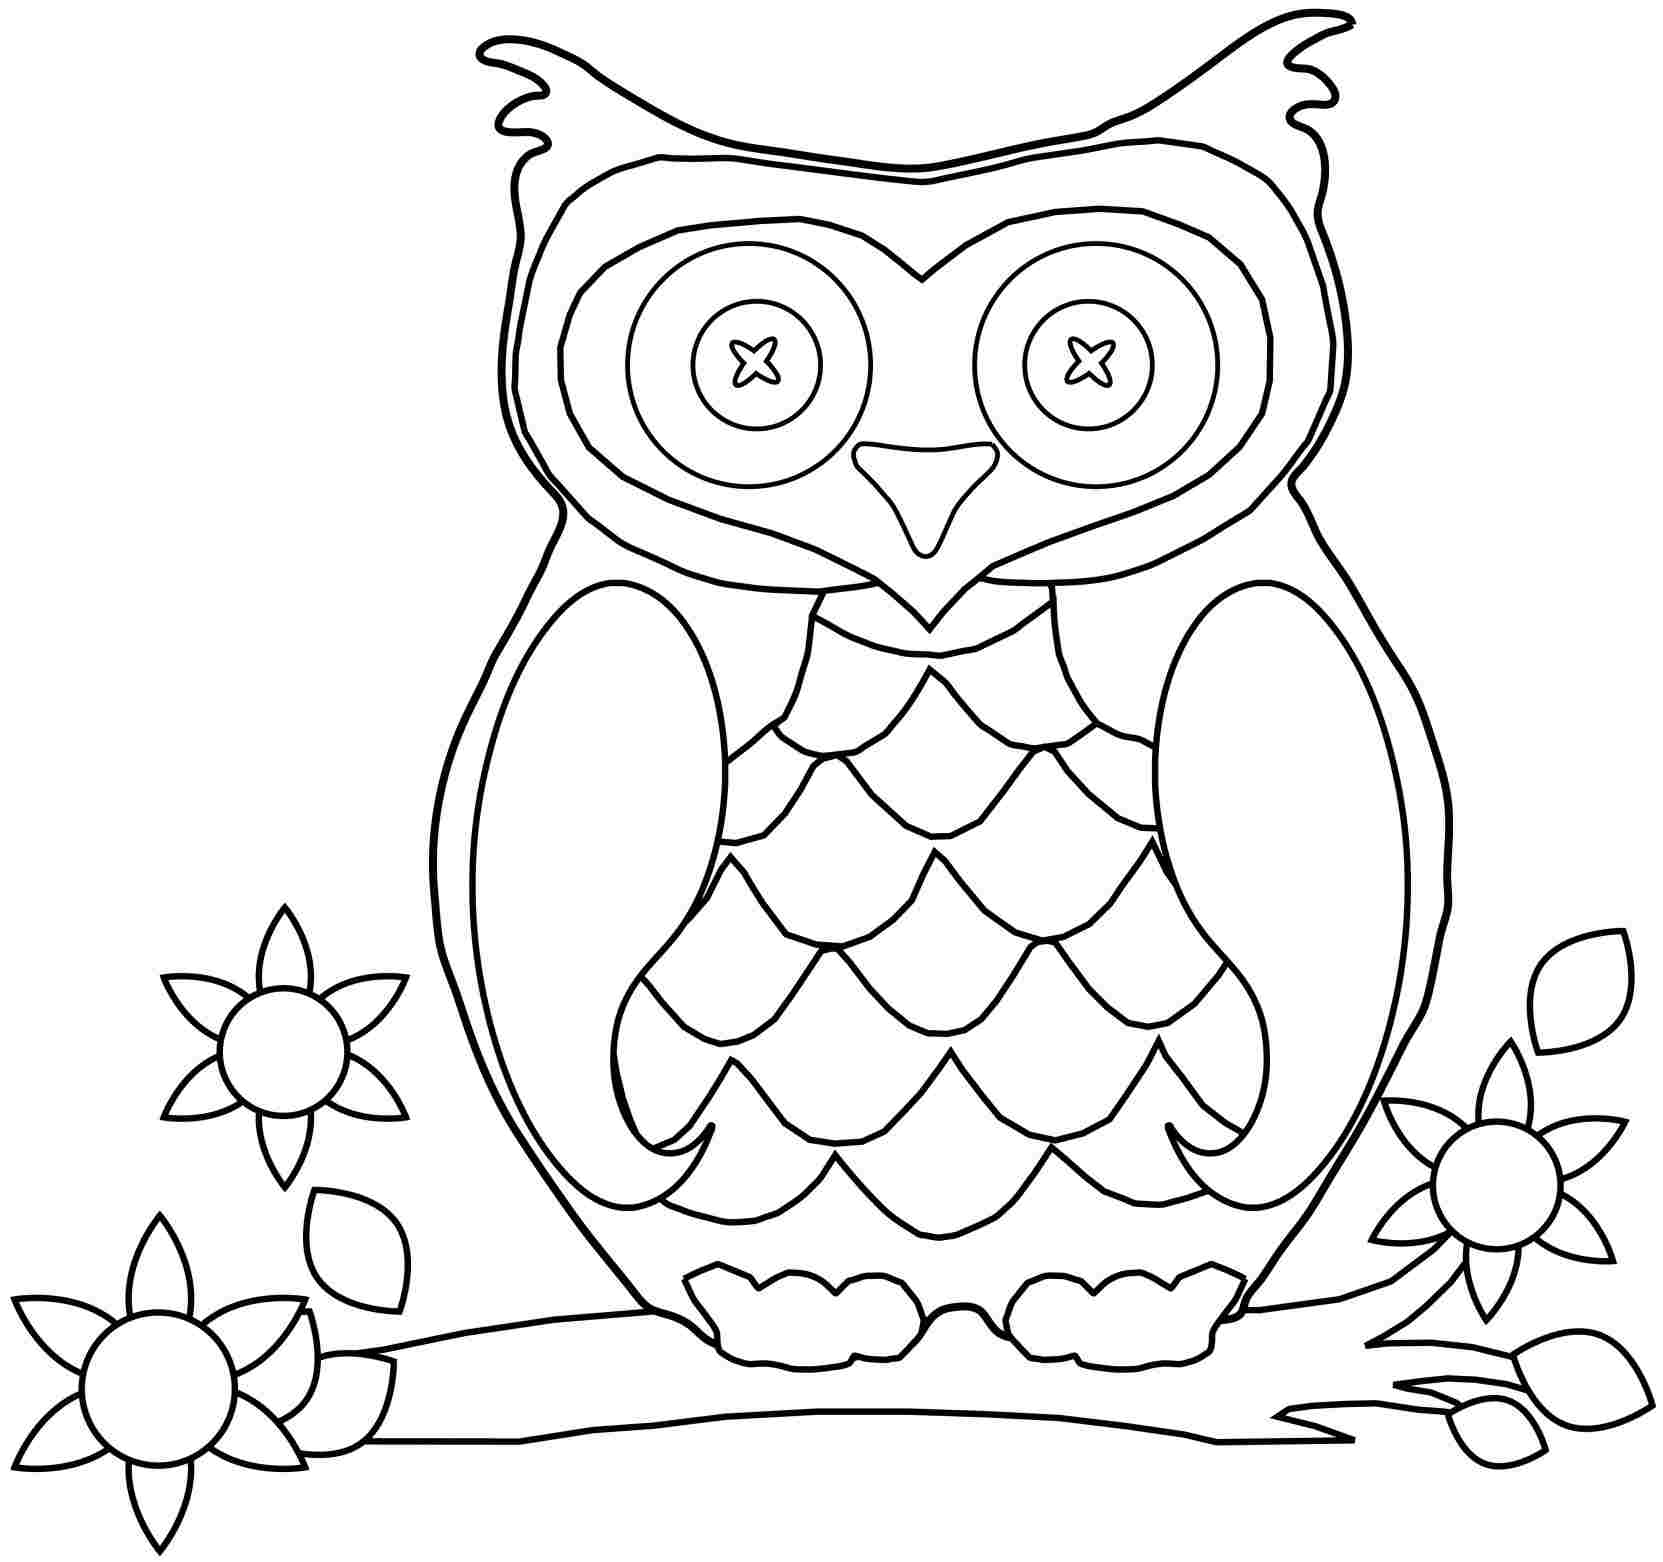 coloring book pages to print - 3325